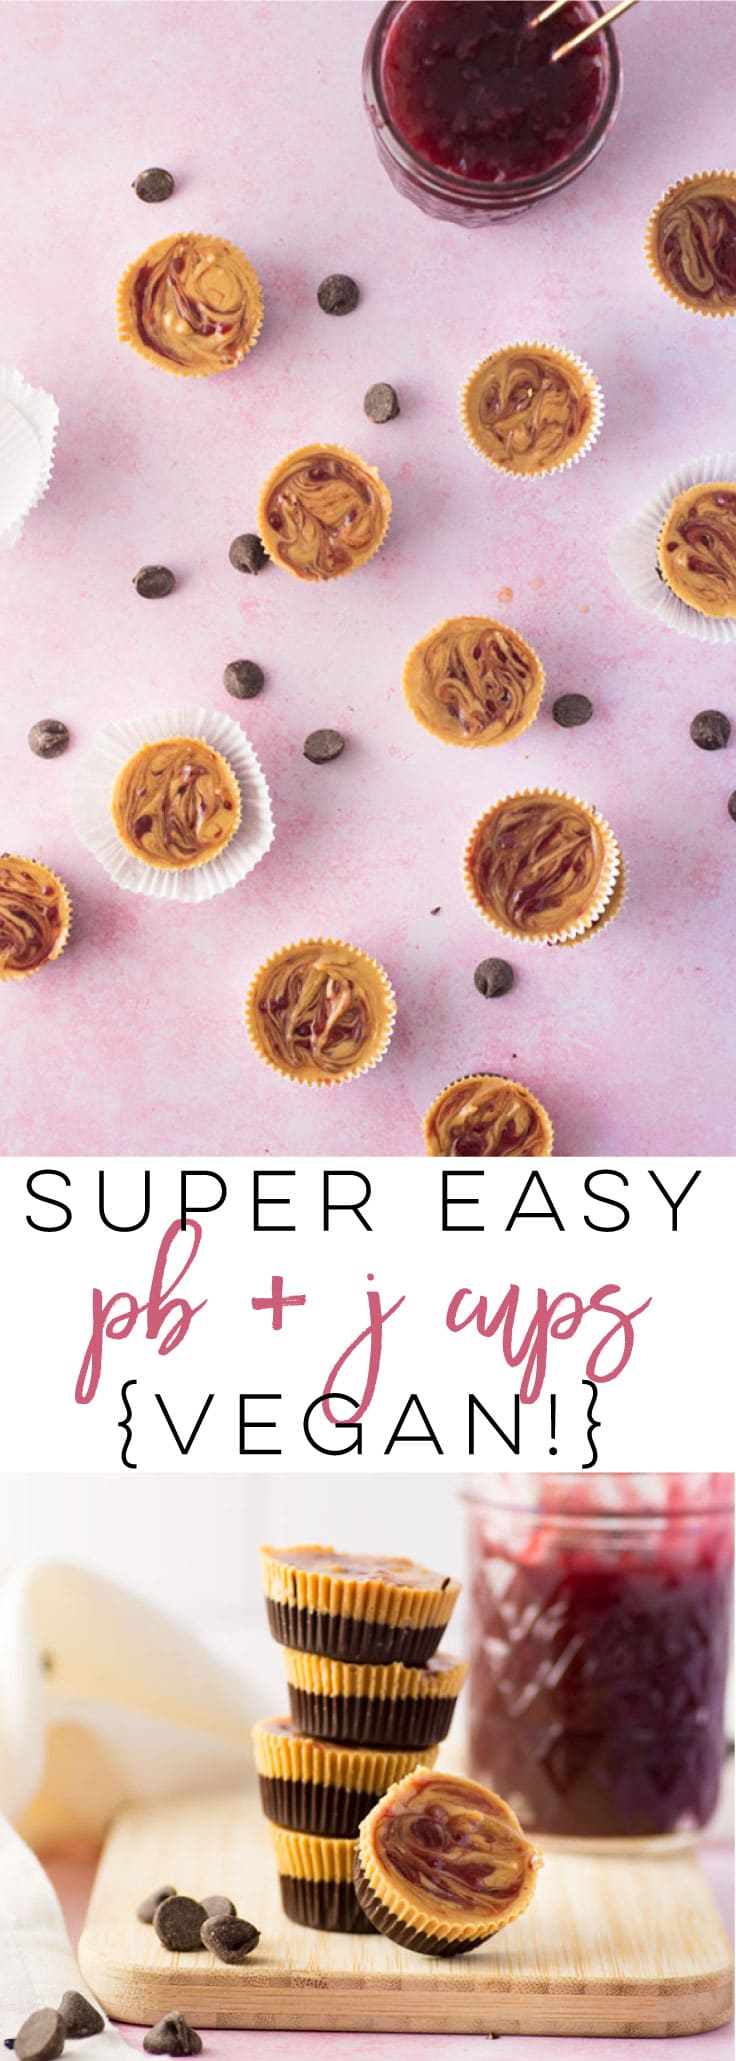 Peanut Butter and Jelly Cups - These homemade Reeses cups have a fun twist with the addition of jelly! Try the easy recipe for a bite-sized treat that can be enjoyed as a snack or dessert! #vegan #chocolate #peanutbutter #snack #dessert #reeses | Mindful Avocado